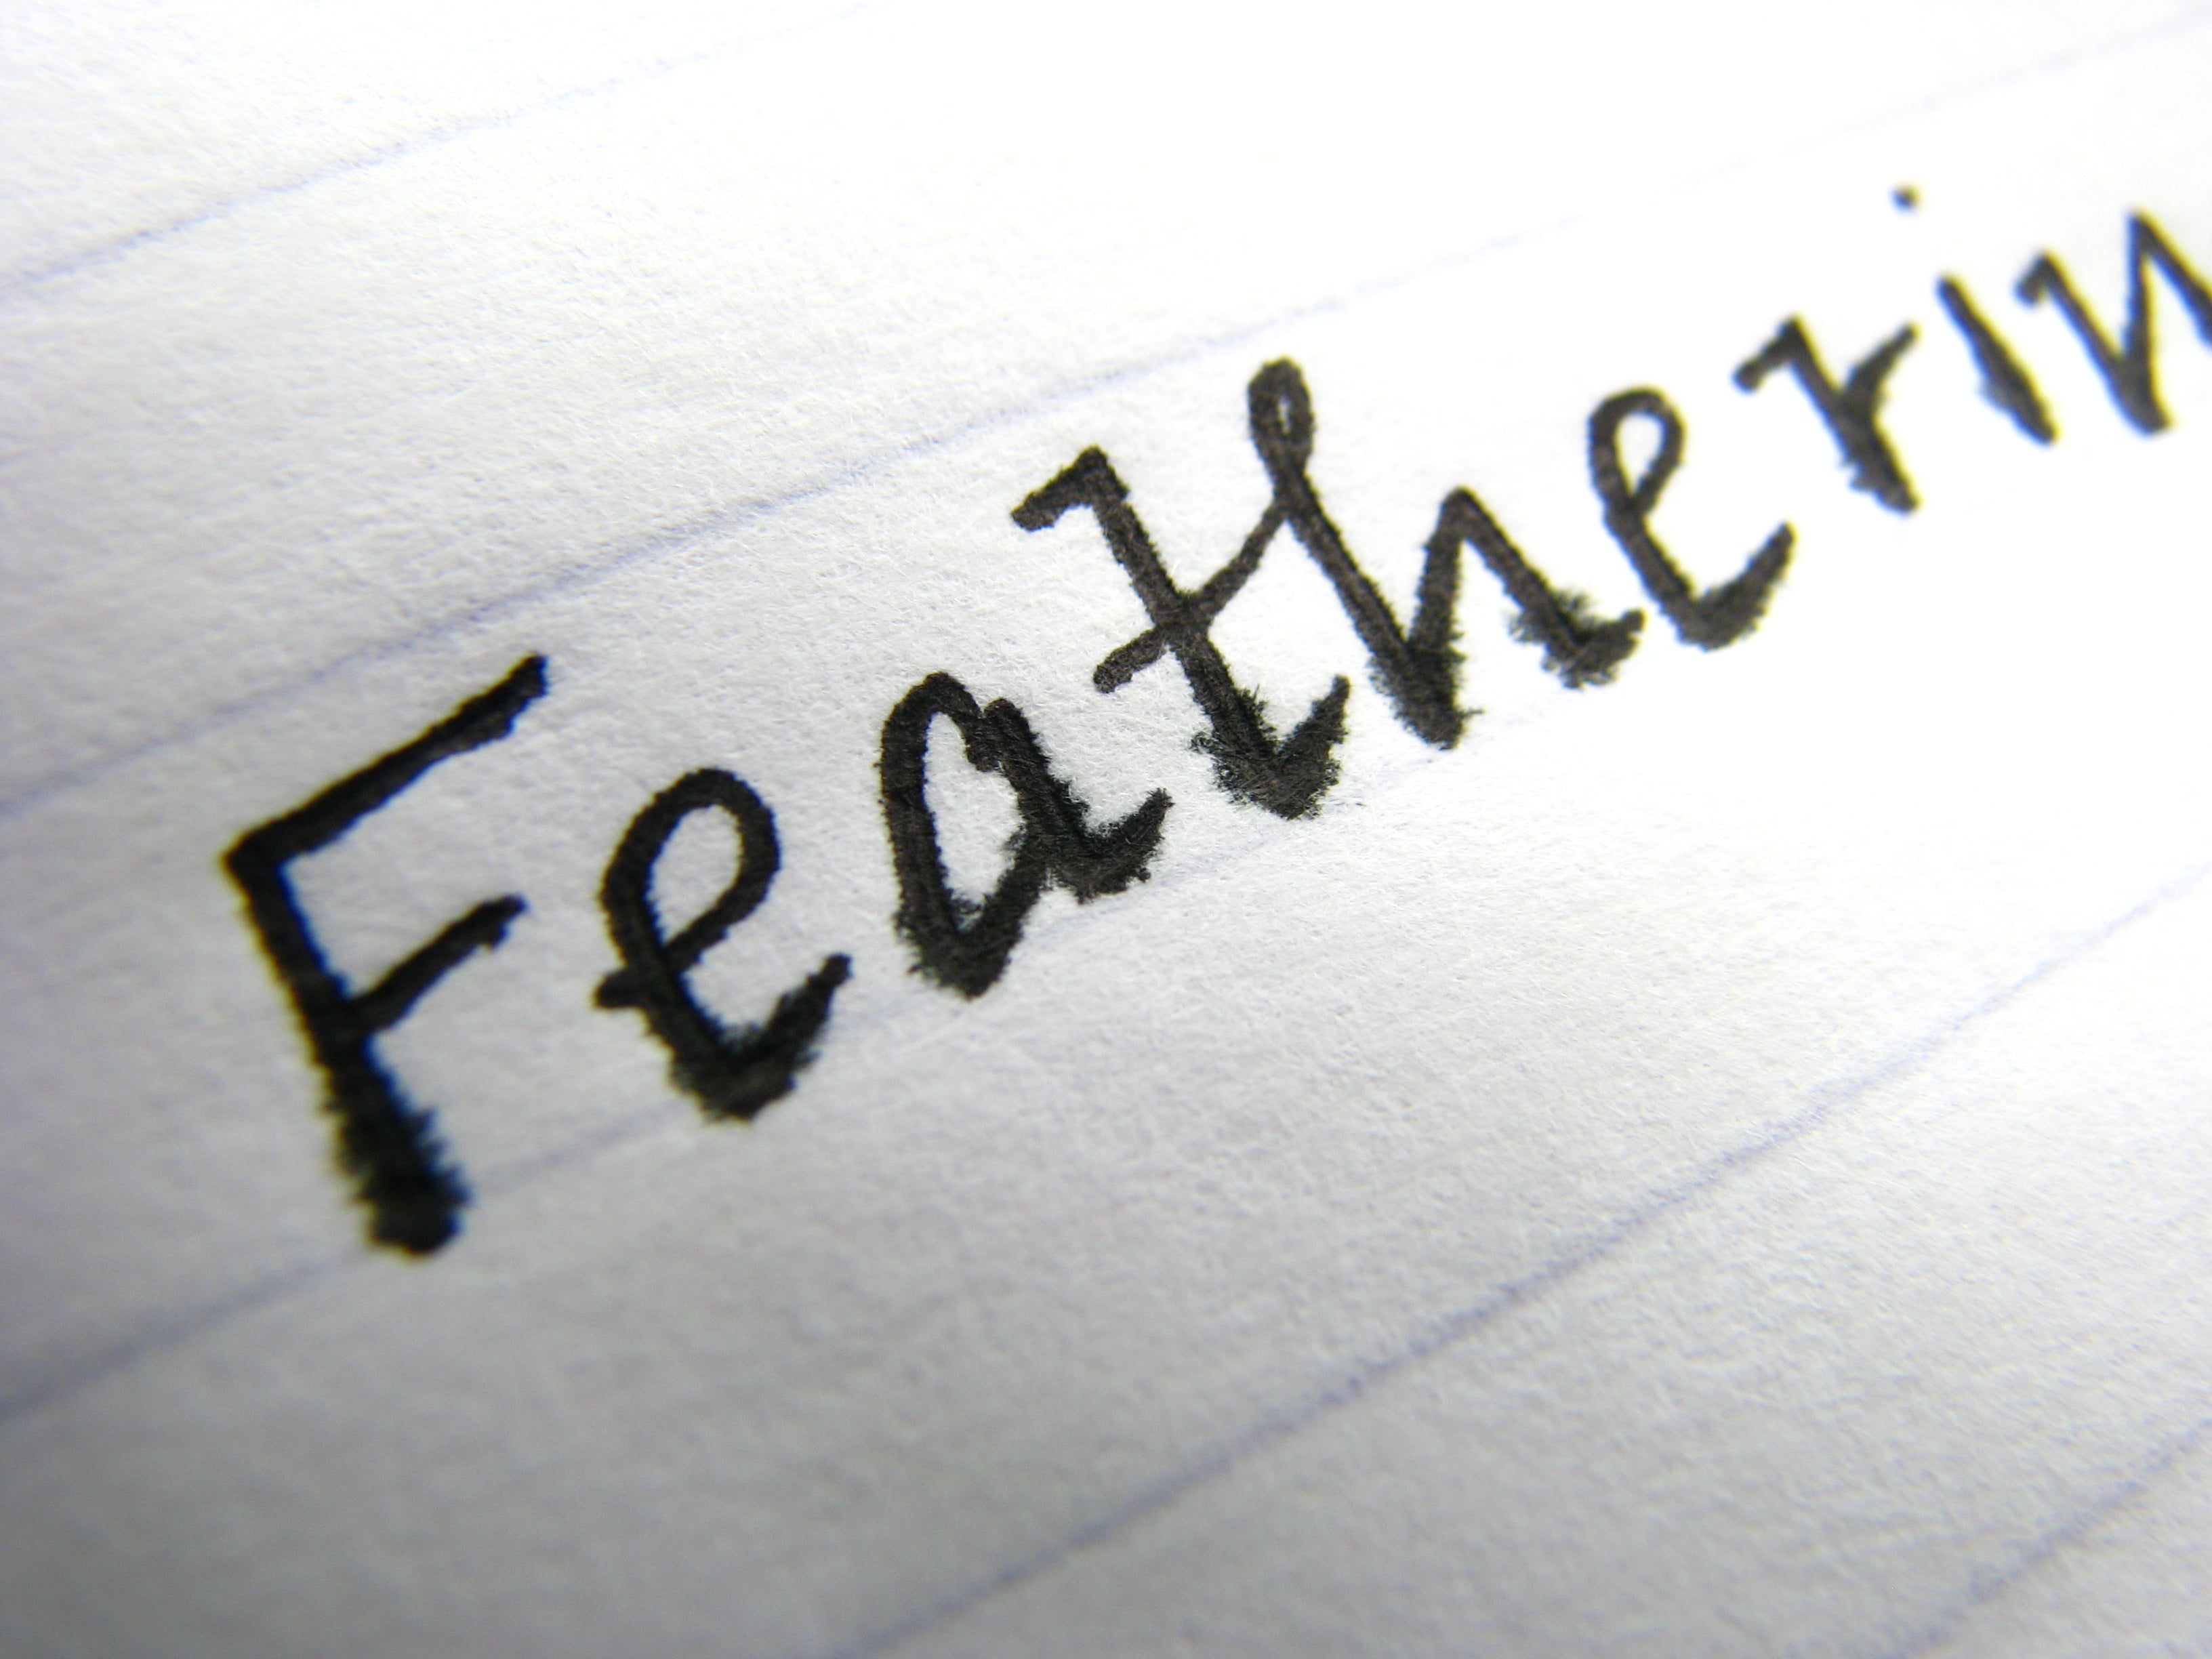 Feathering on low-quality paper with fountain pen ink